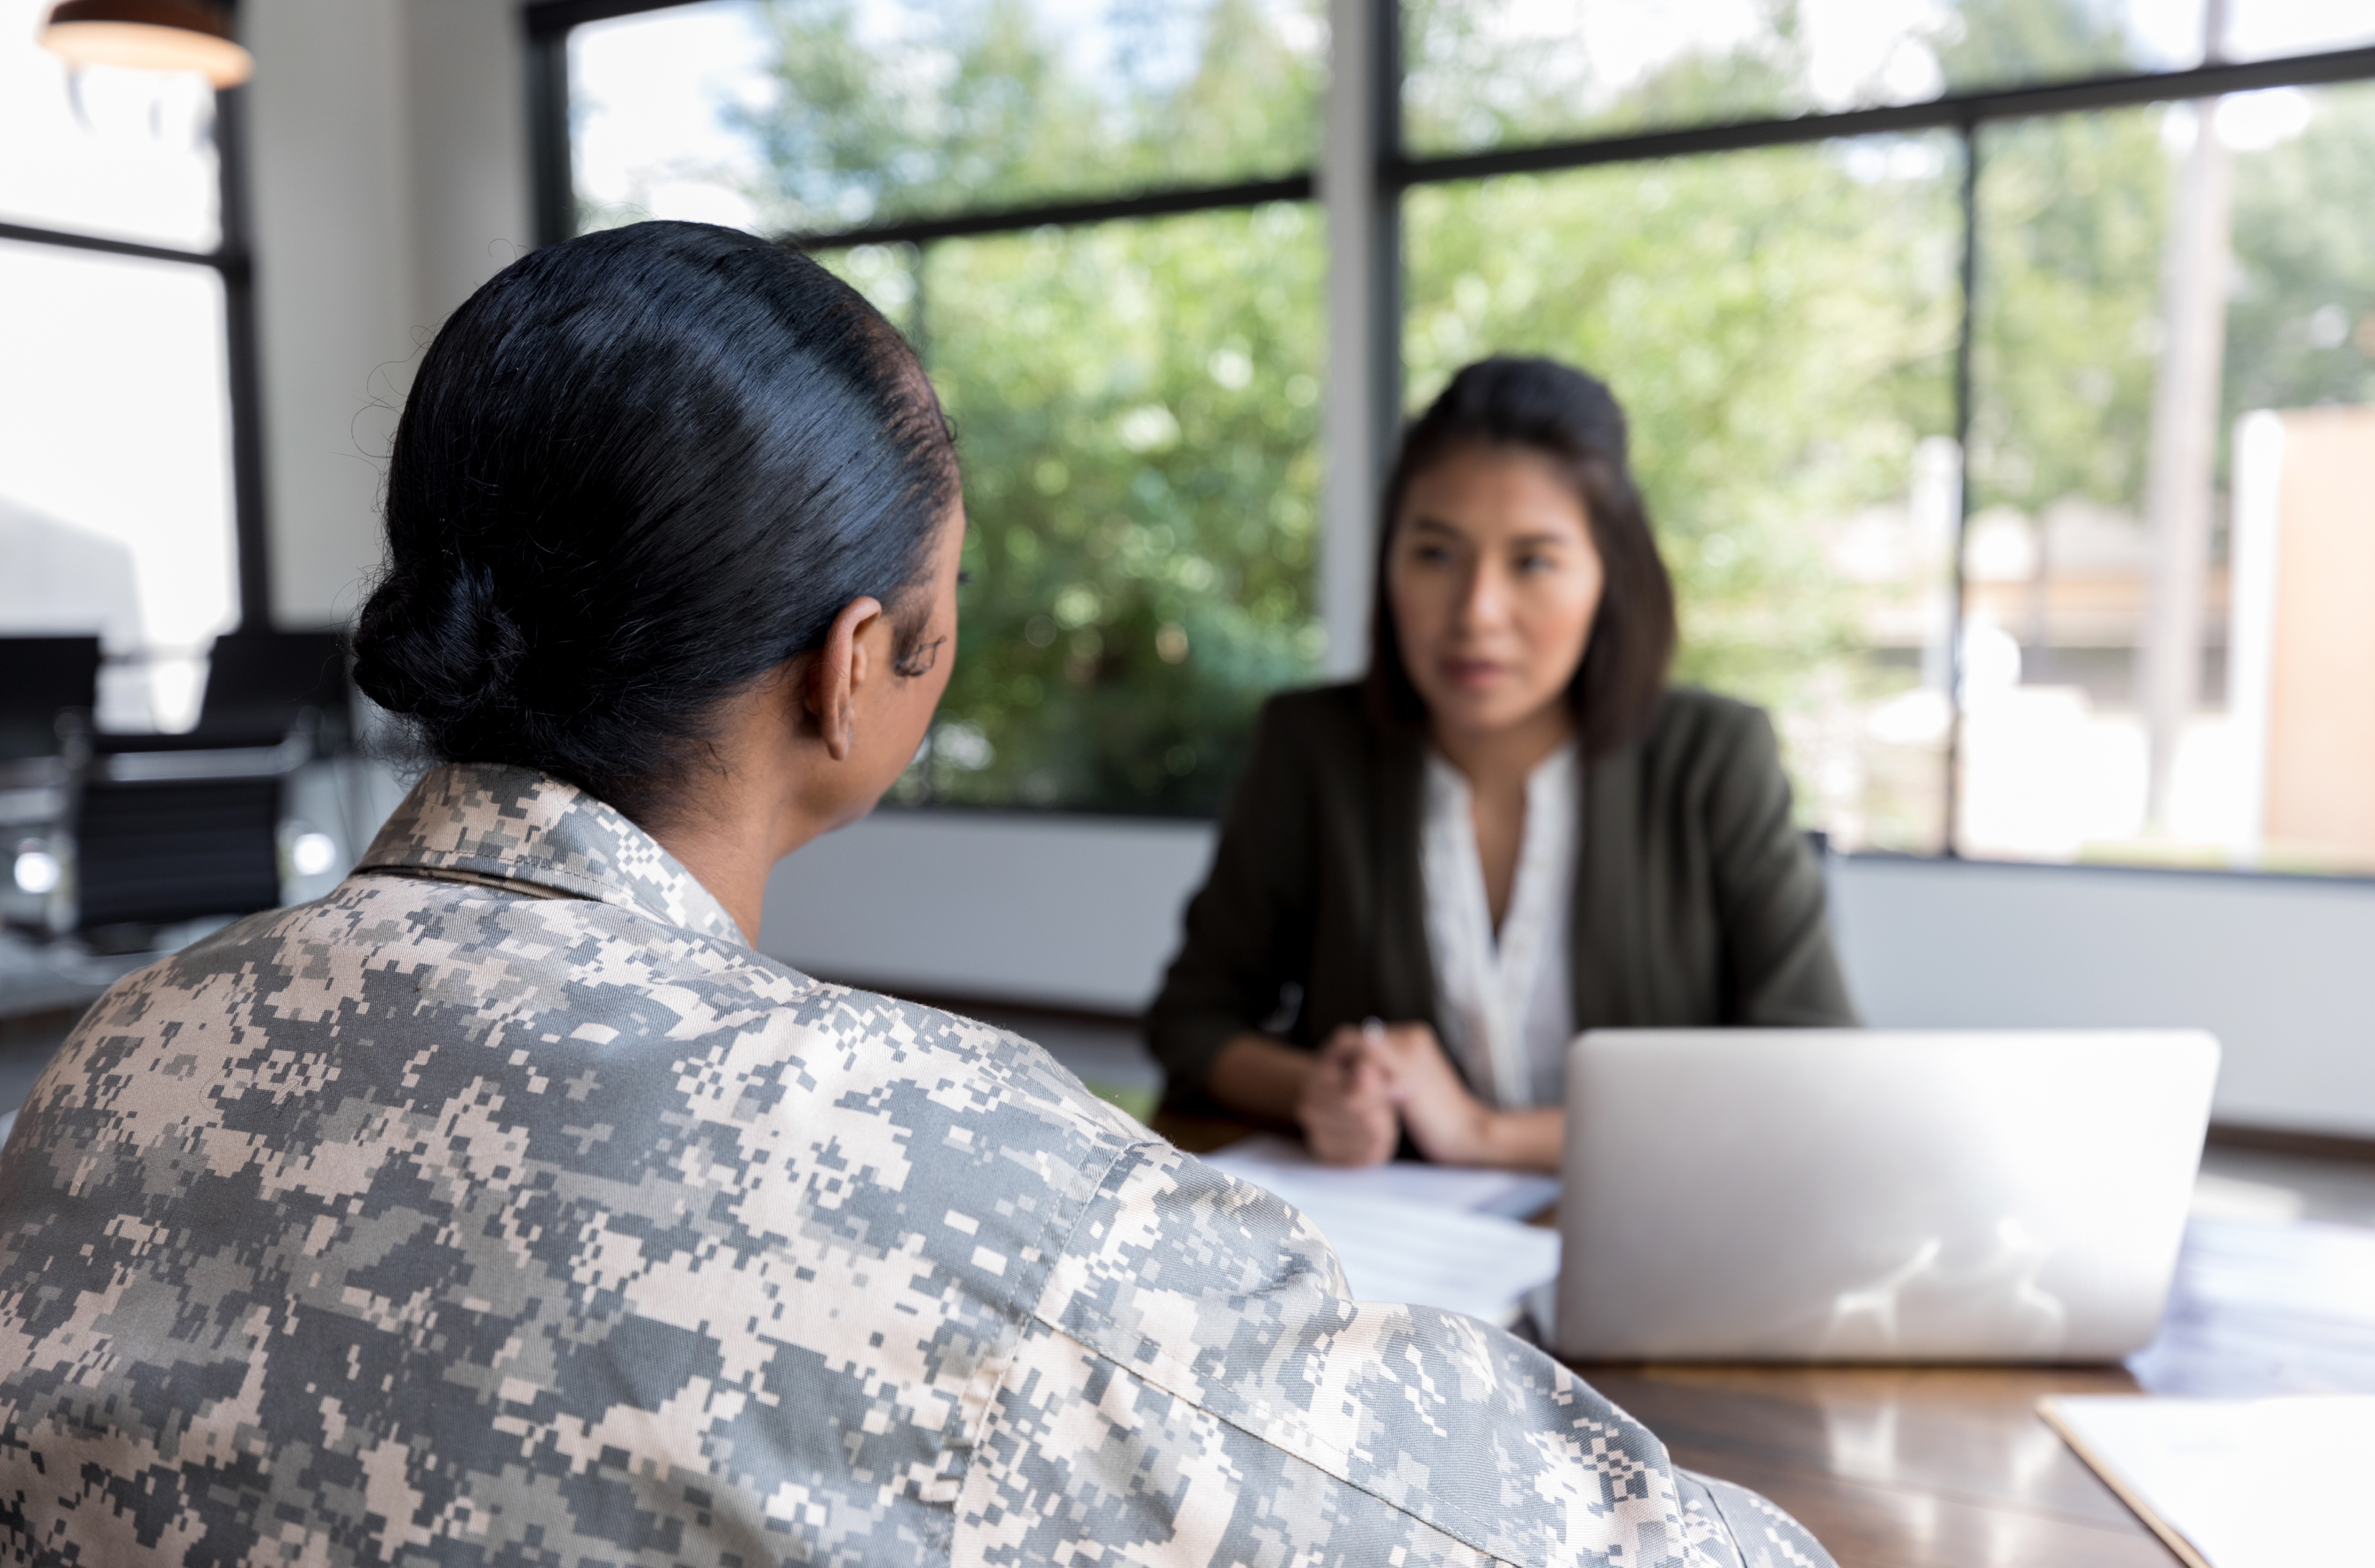 UWCM Veterans Treatment Court photo of woman soldiers receiving counseling